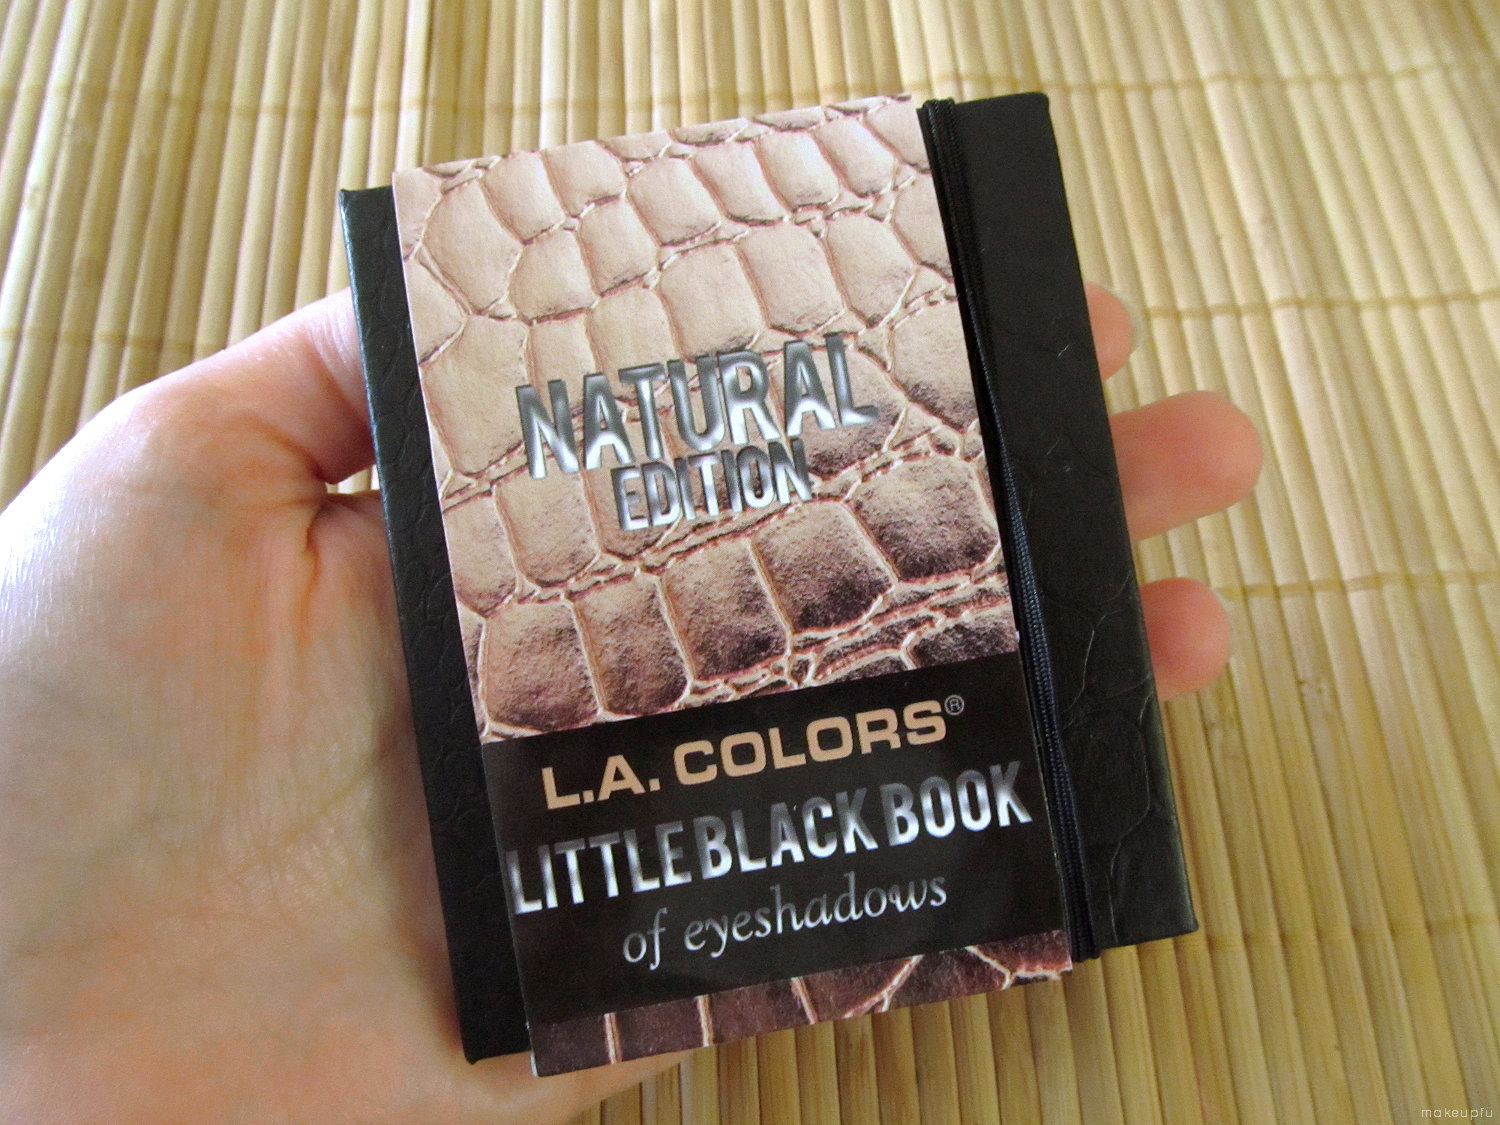 L.A. Colors Little Black Book of Eyeshadows: Natural Edition {Review ...